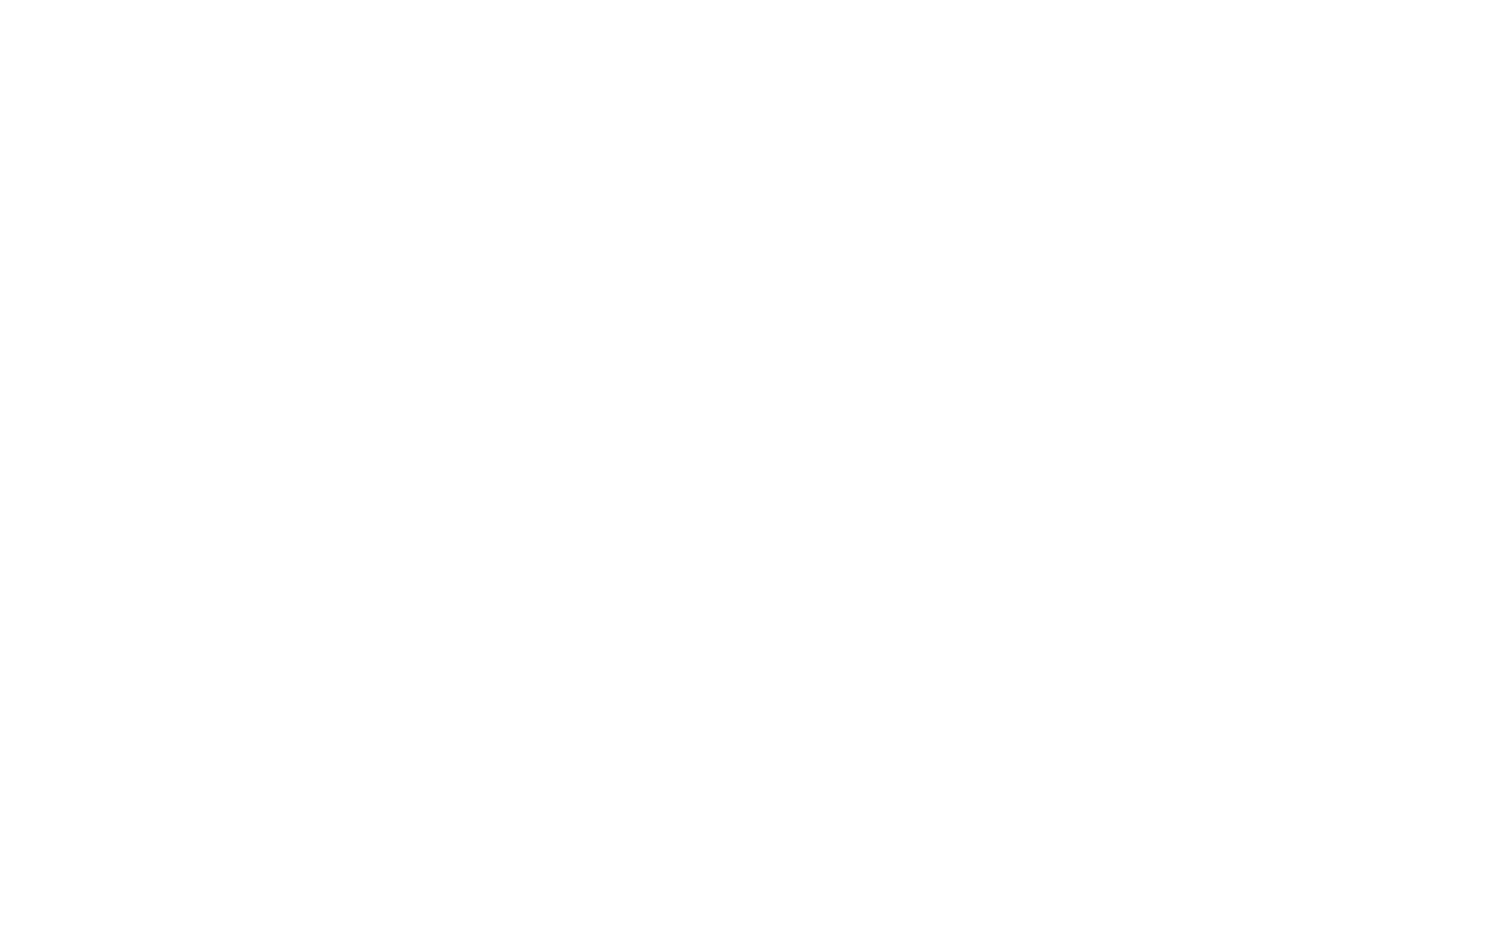 D&K Events